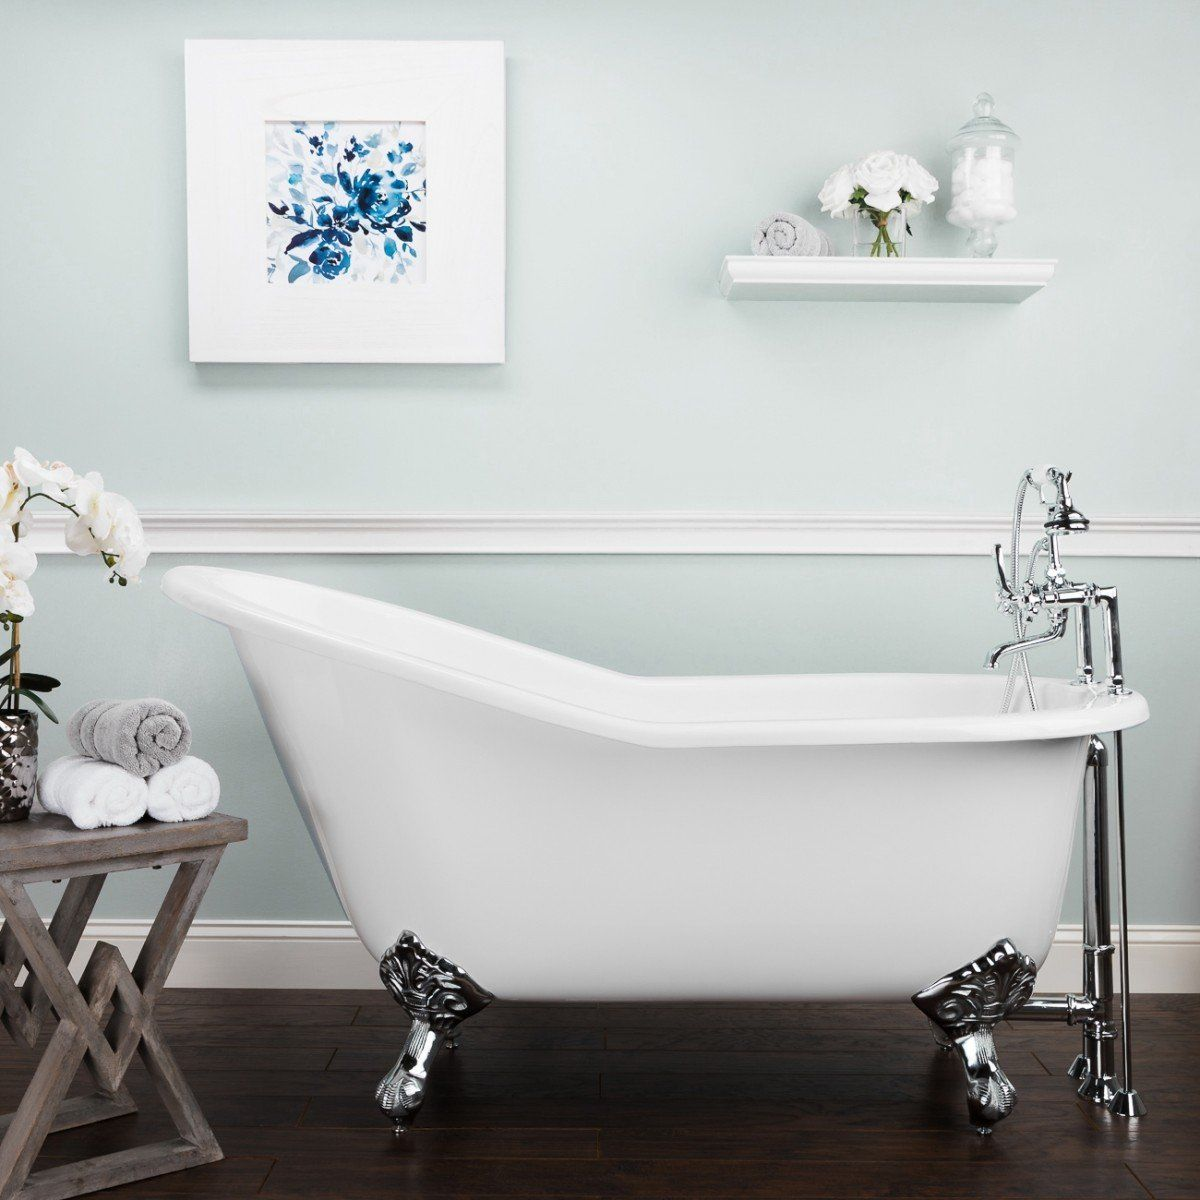 Ultra Acrylic Slipper Clawfoot Tub 51 X 26 With Oil Rubbed Bronze